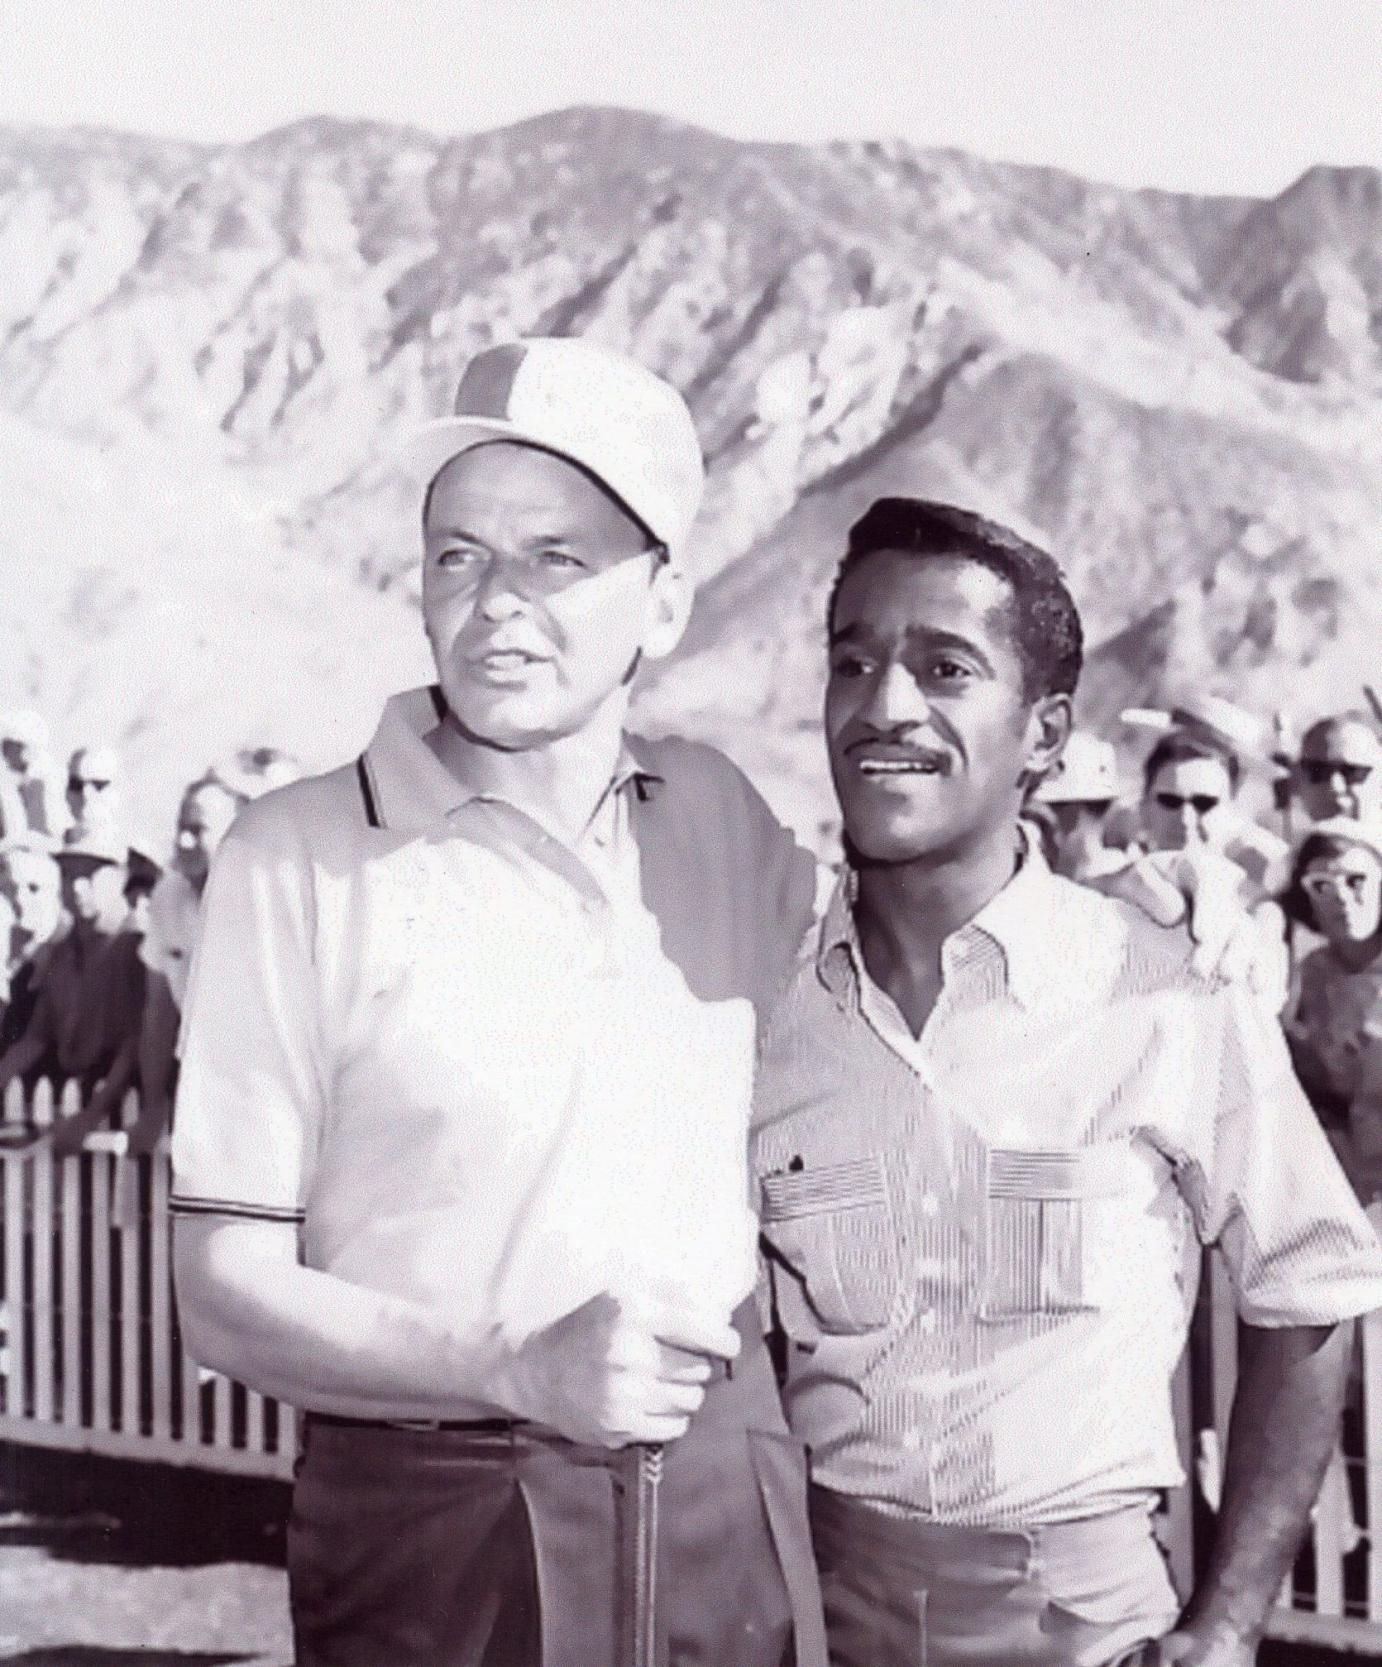 Frank Sinatra + Sammy Davis, Jr. Golfing In Palm Springs